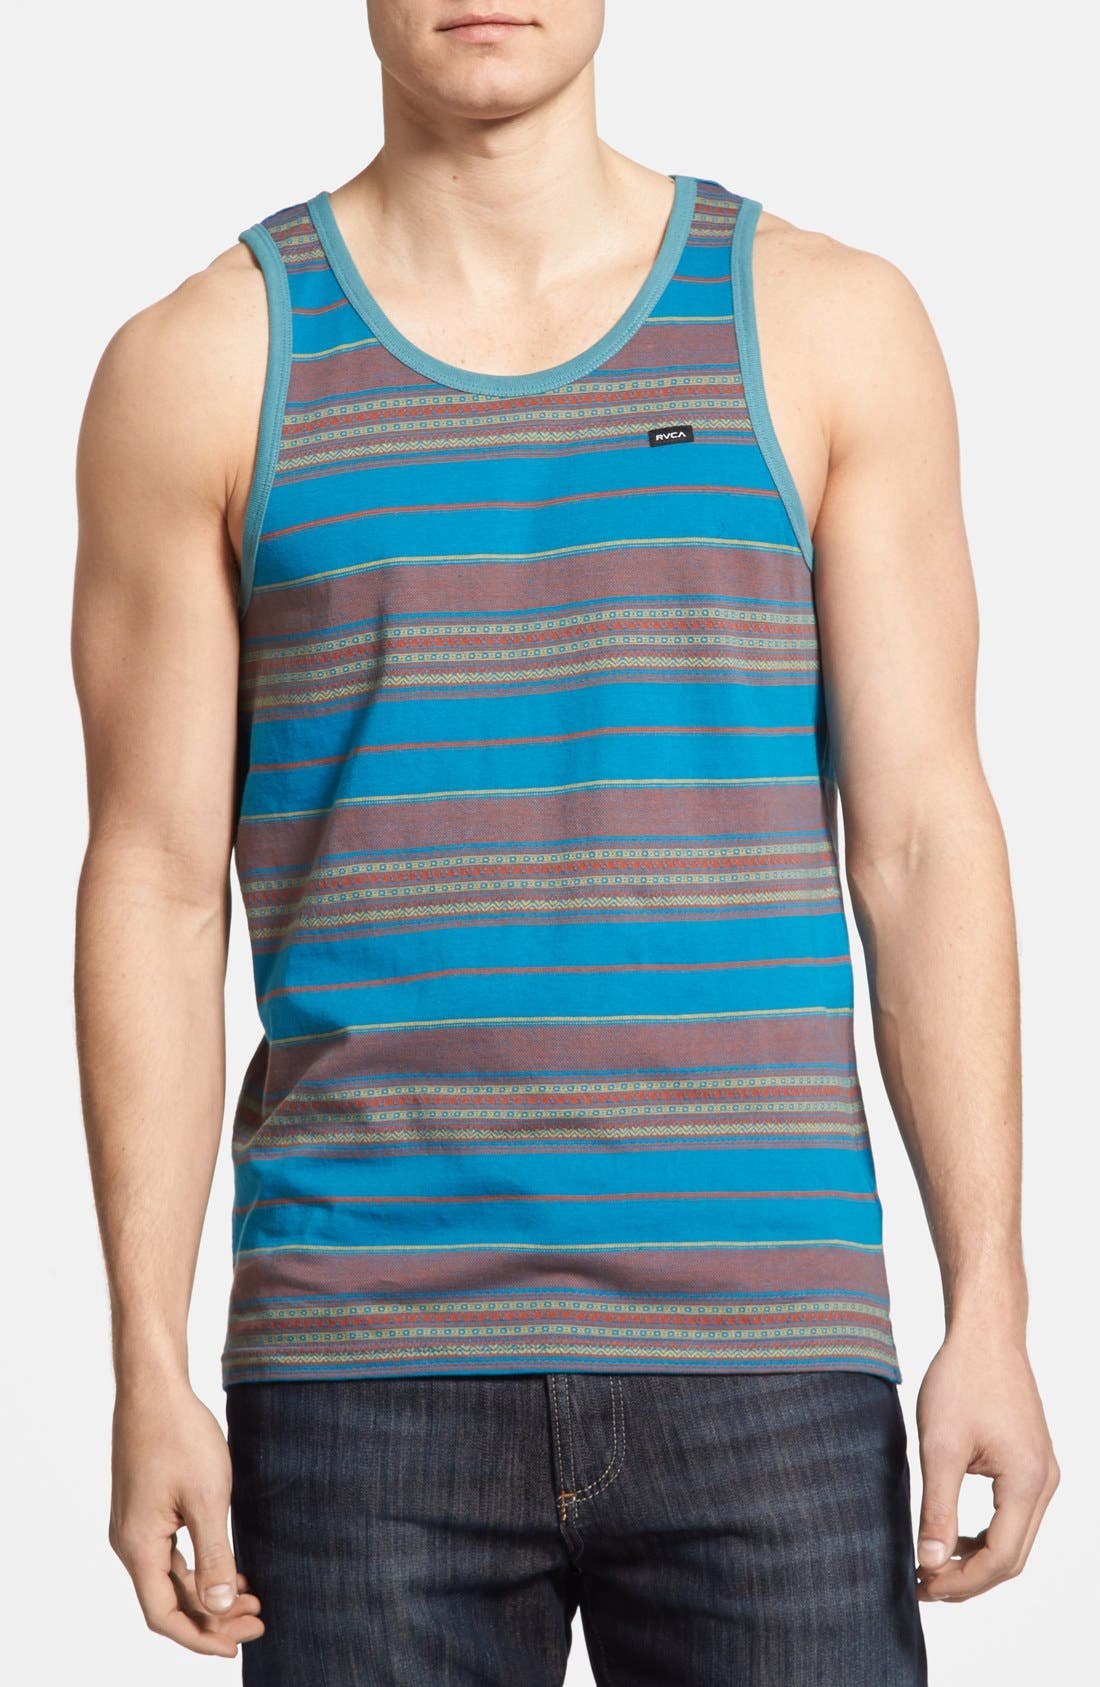 Main Image - RVCA 'Canyon' Stripe Tank Top